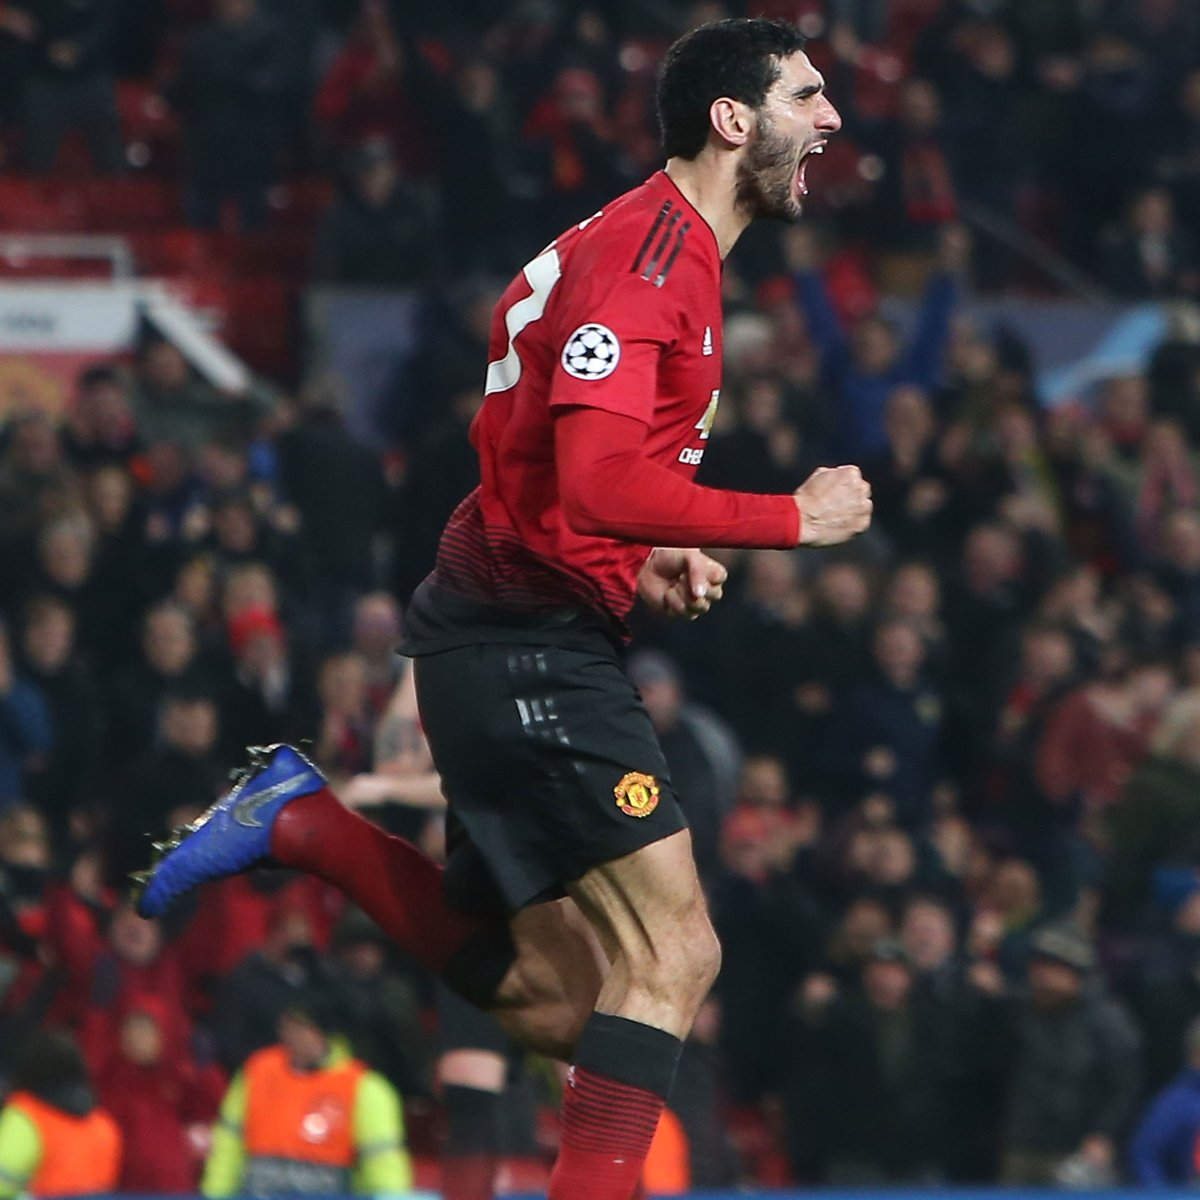 Stepping up when it mattered the most 💪  𝙀𝙫𝙚𝙧𝙮 𝙜𝙖𝙢𝙚, 𝙚𝙫𝙚𝙧𝙮 𝙜𝙤𝙖𝙡, 𝙤𝙣𝙡𝙮 𝙤𝙣 #𝙈𝙐𝙏𝙑 📲  #MUFC #GoalOfTheDay https://t.co/Fl0yOiHbrf